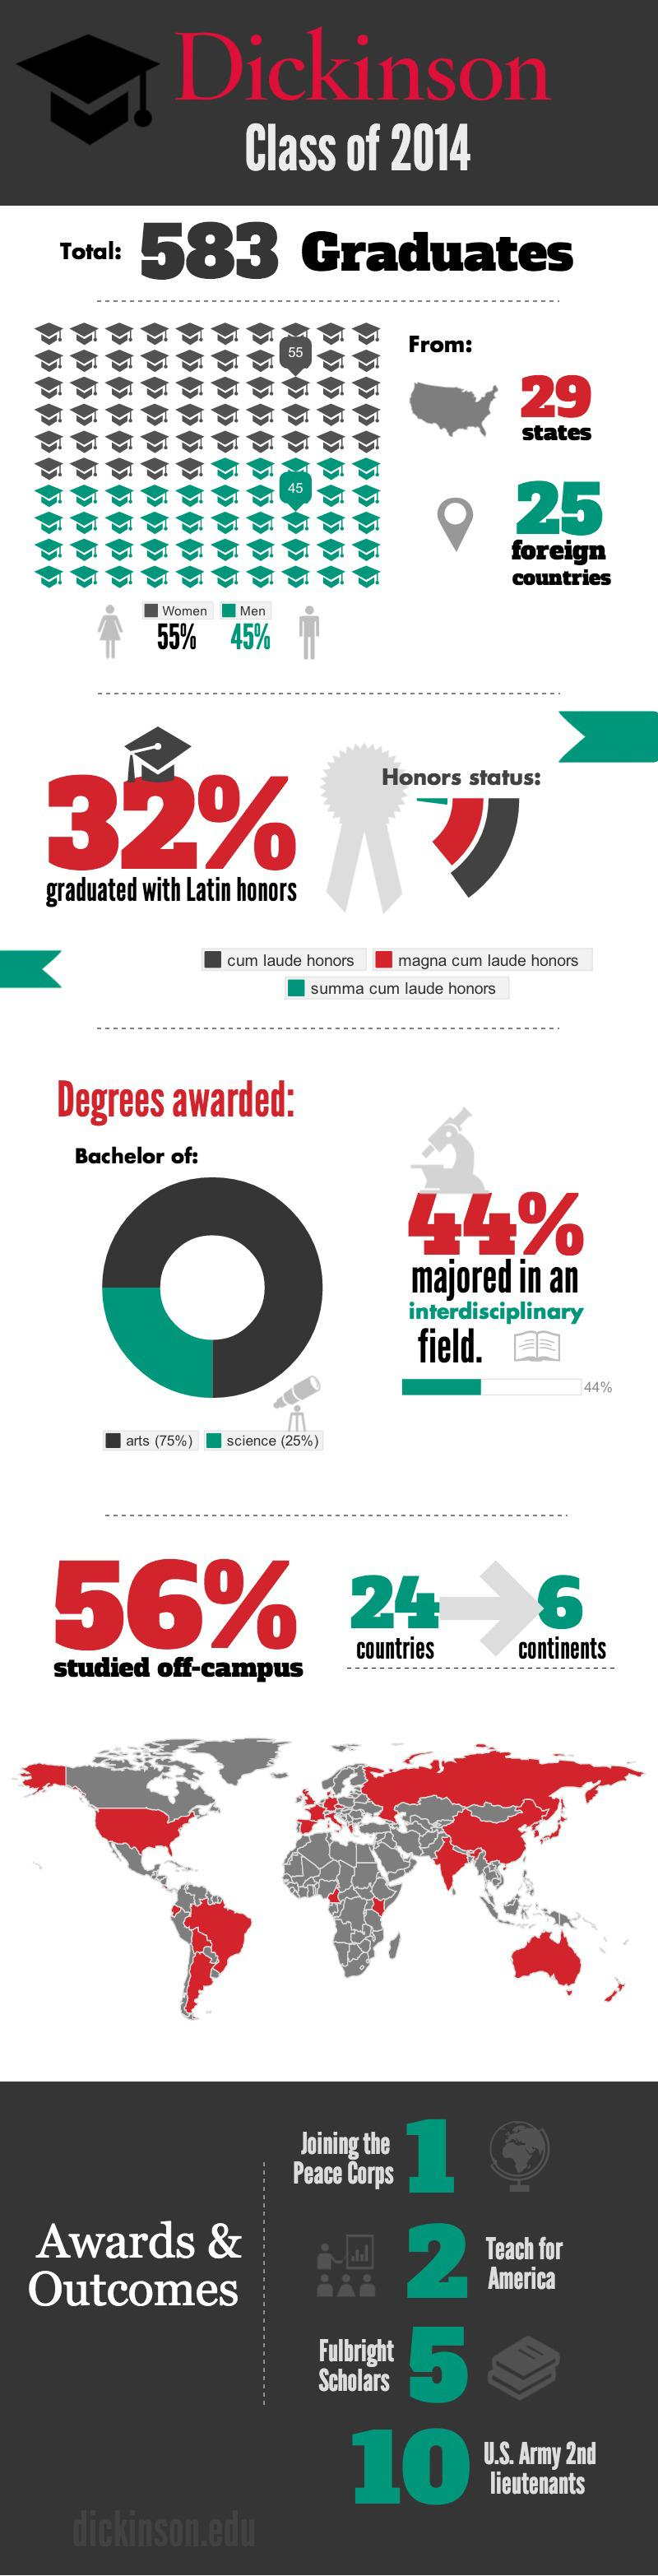 Class of 2014 Infographic